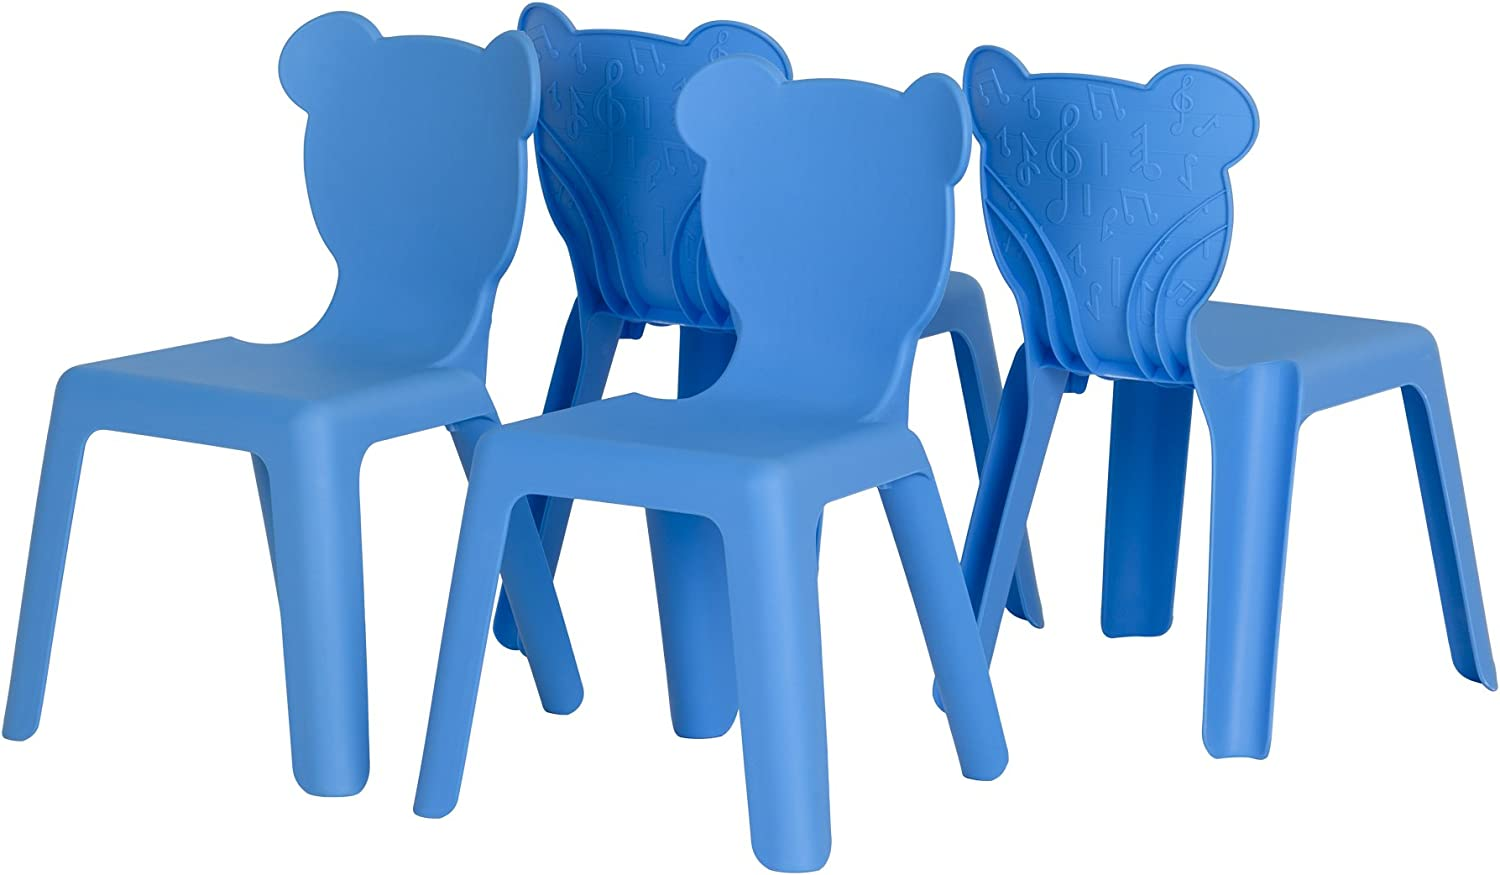 South Shore Furniture 100176 Crea Kids Plastic Stacking Chairs, 4 Pack, bluee